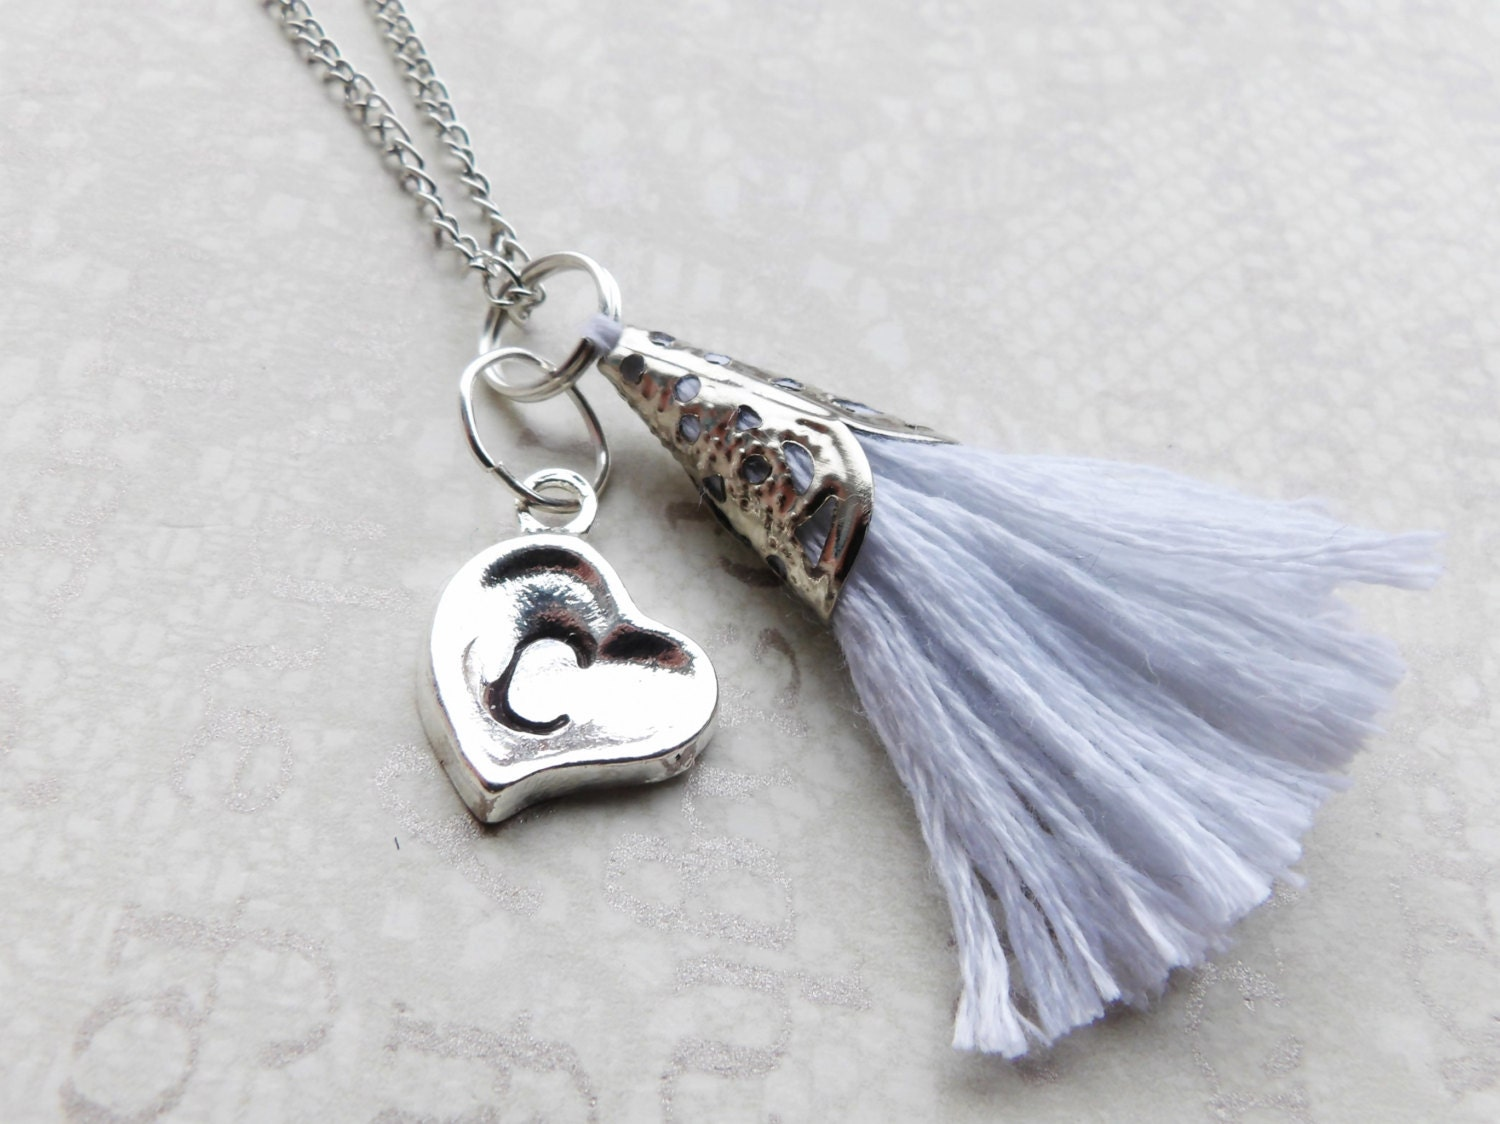 Personalized Necklace Silver Heart with Initial  Your Choice of Tassel Minimal Necklace Bridal Jewelry Bridesmaid Necklace Gift